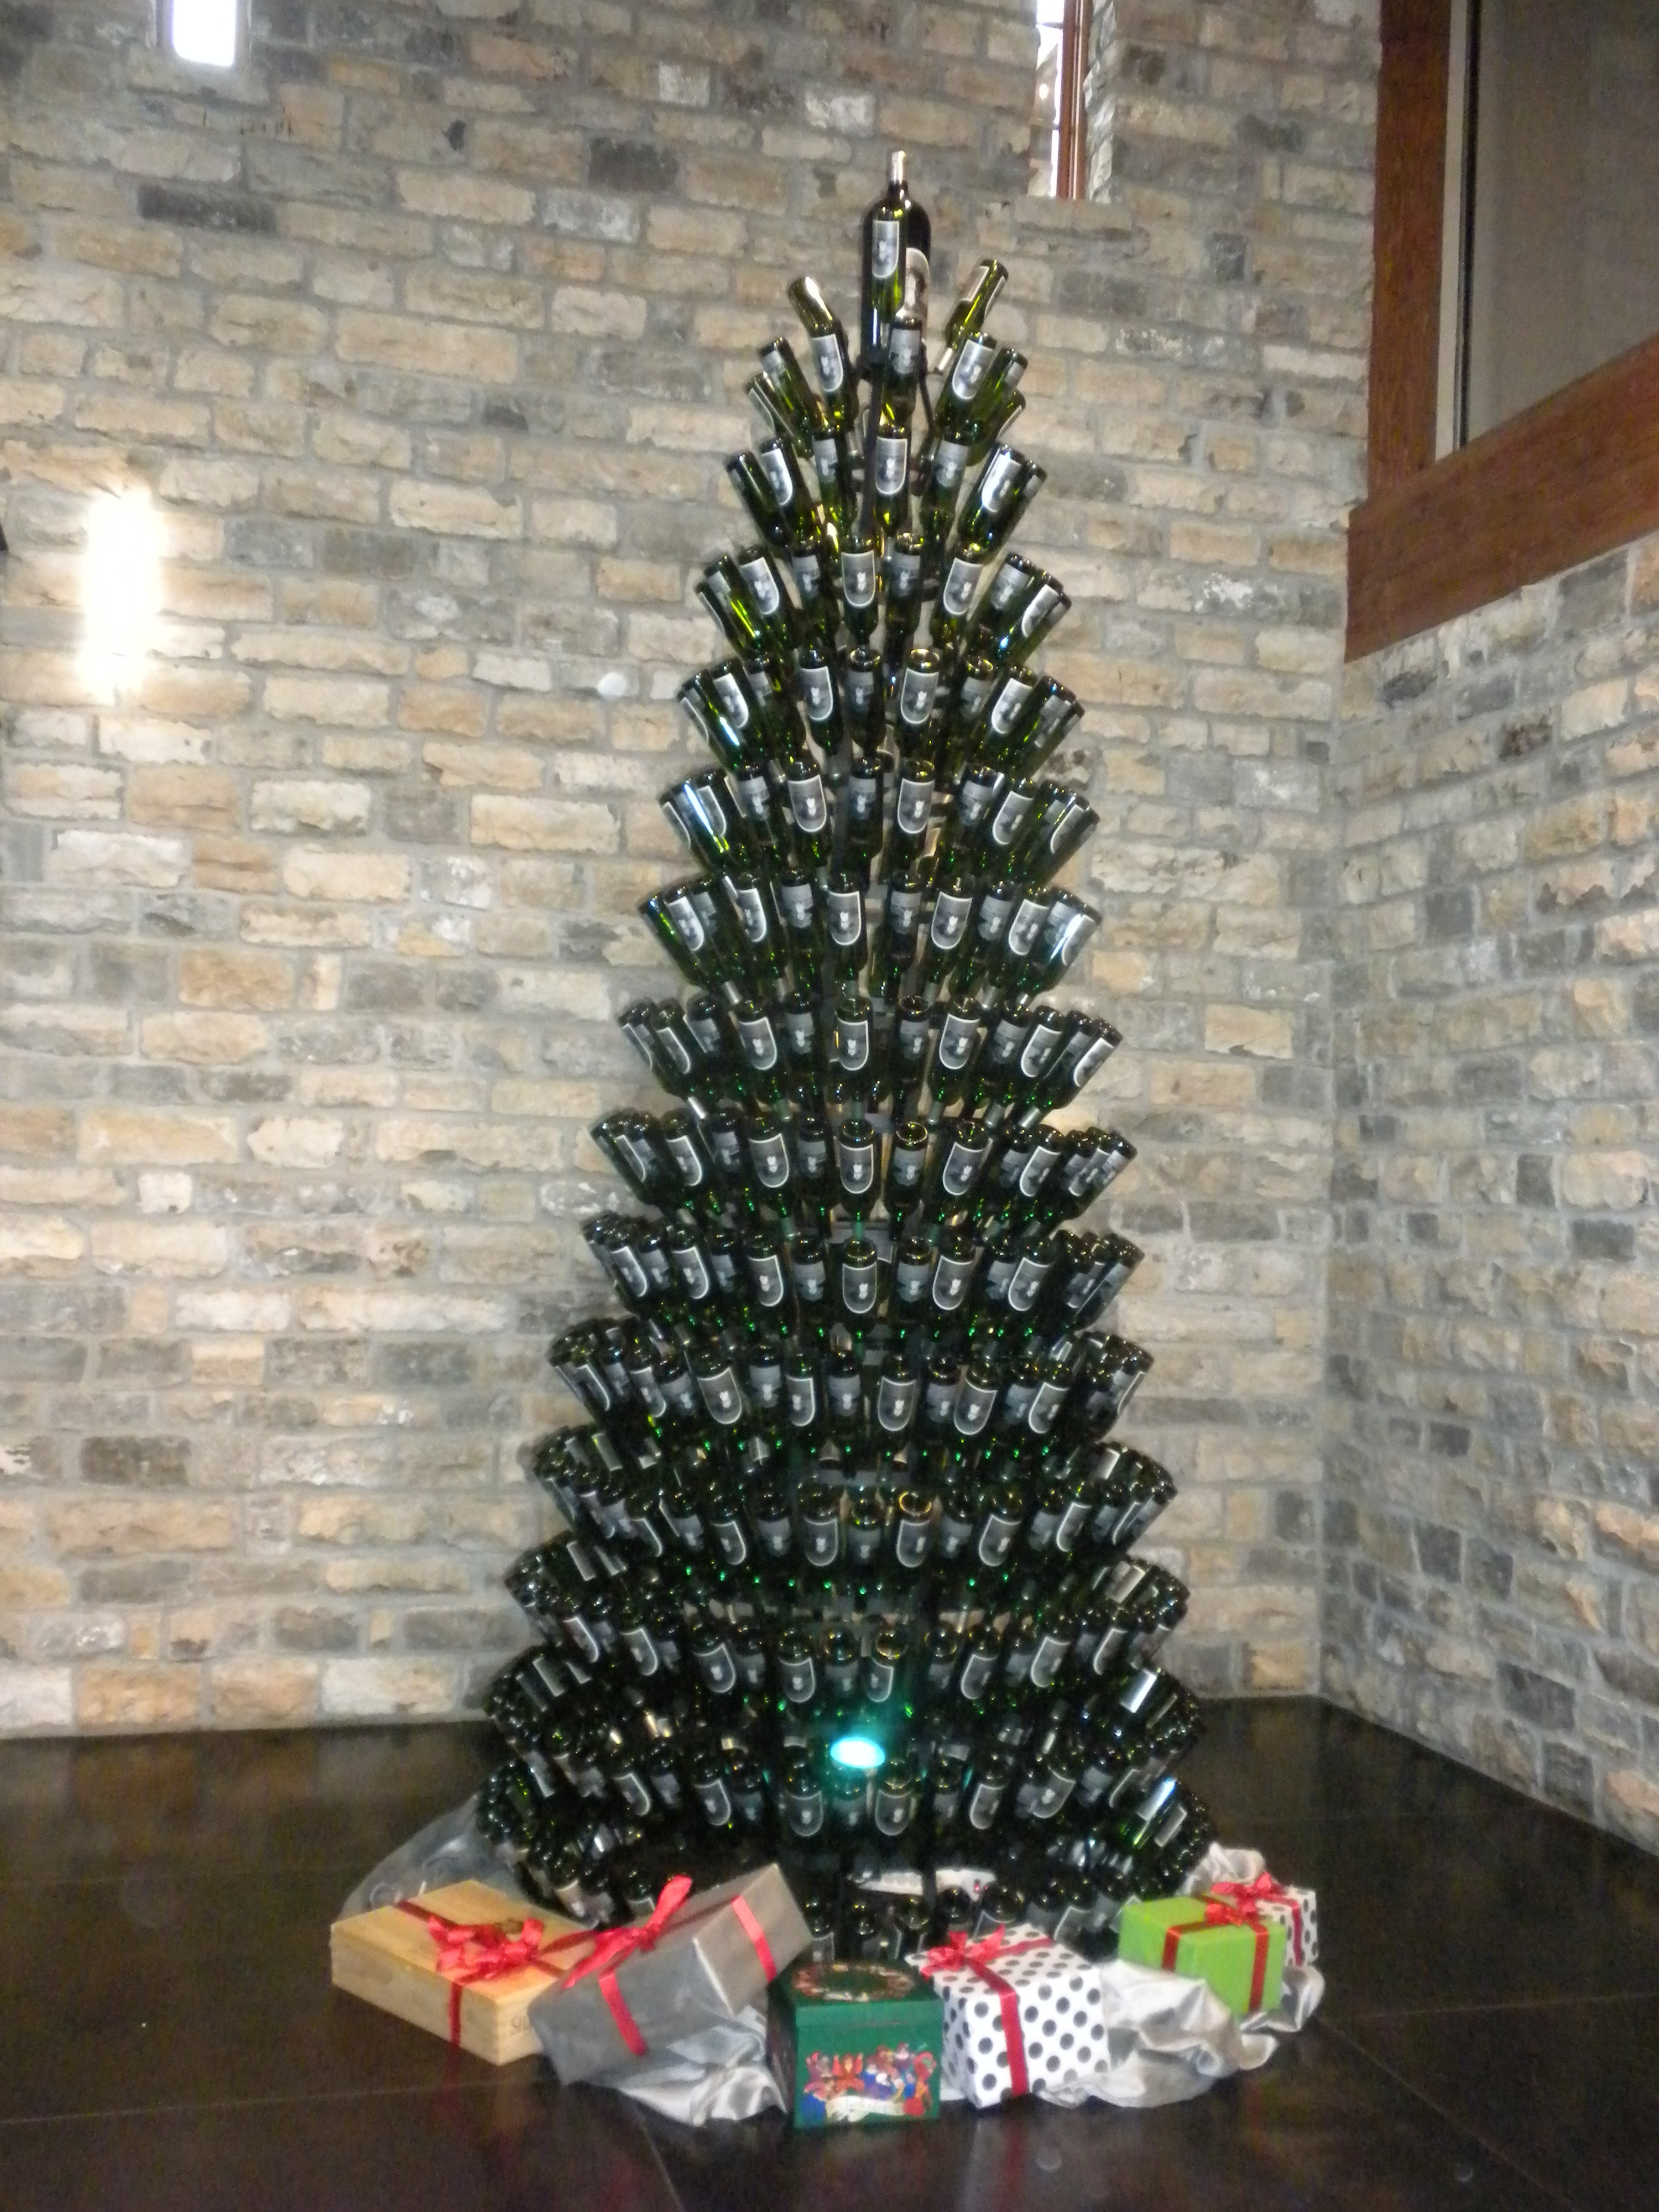 advertisements - How To Make A Wine Bottle Christmas Tree